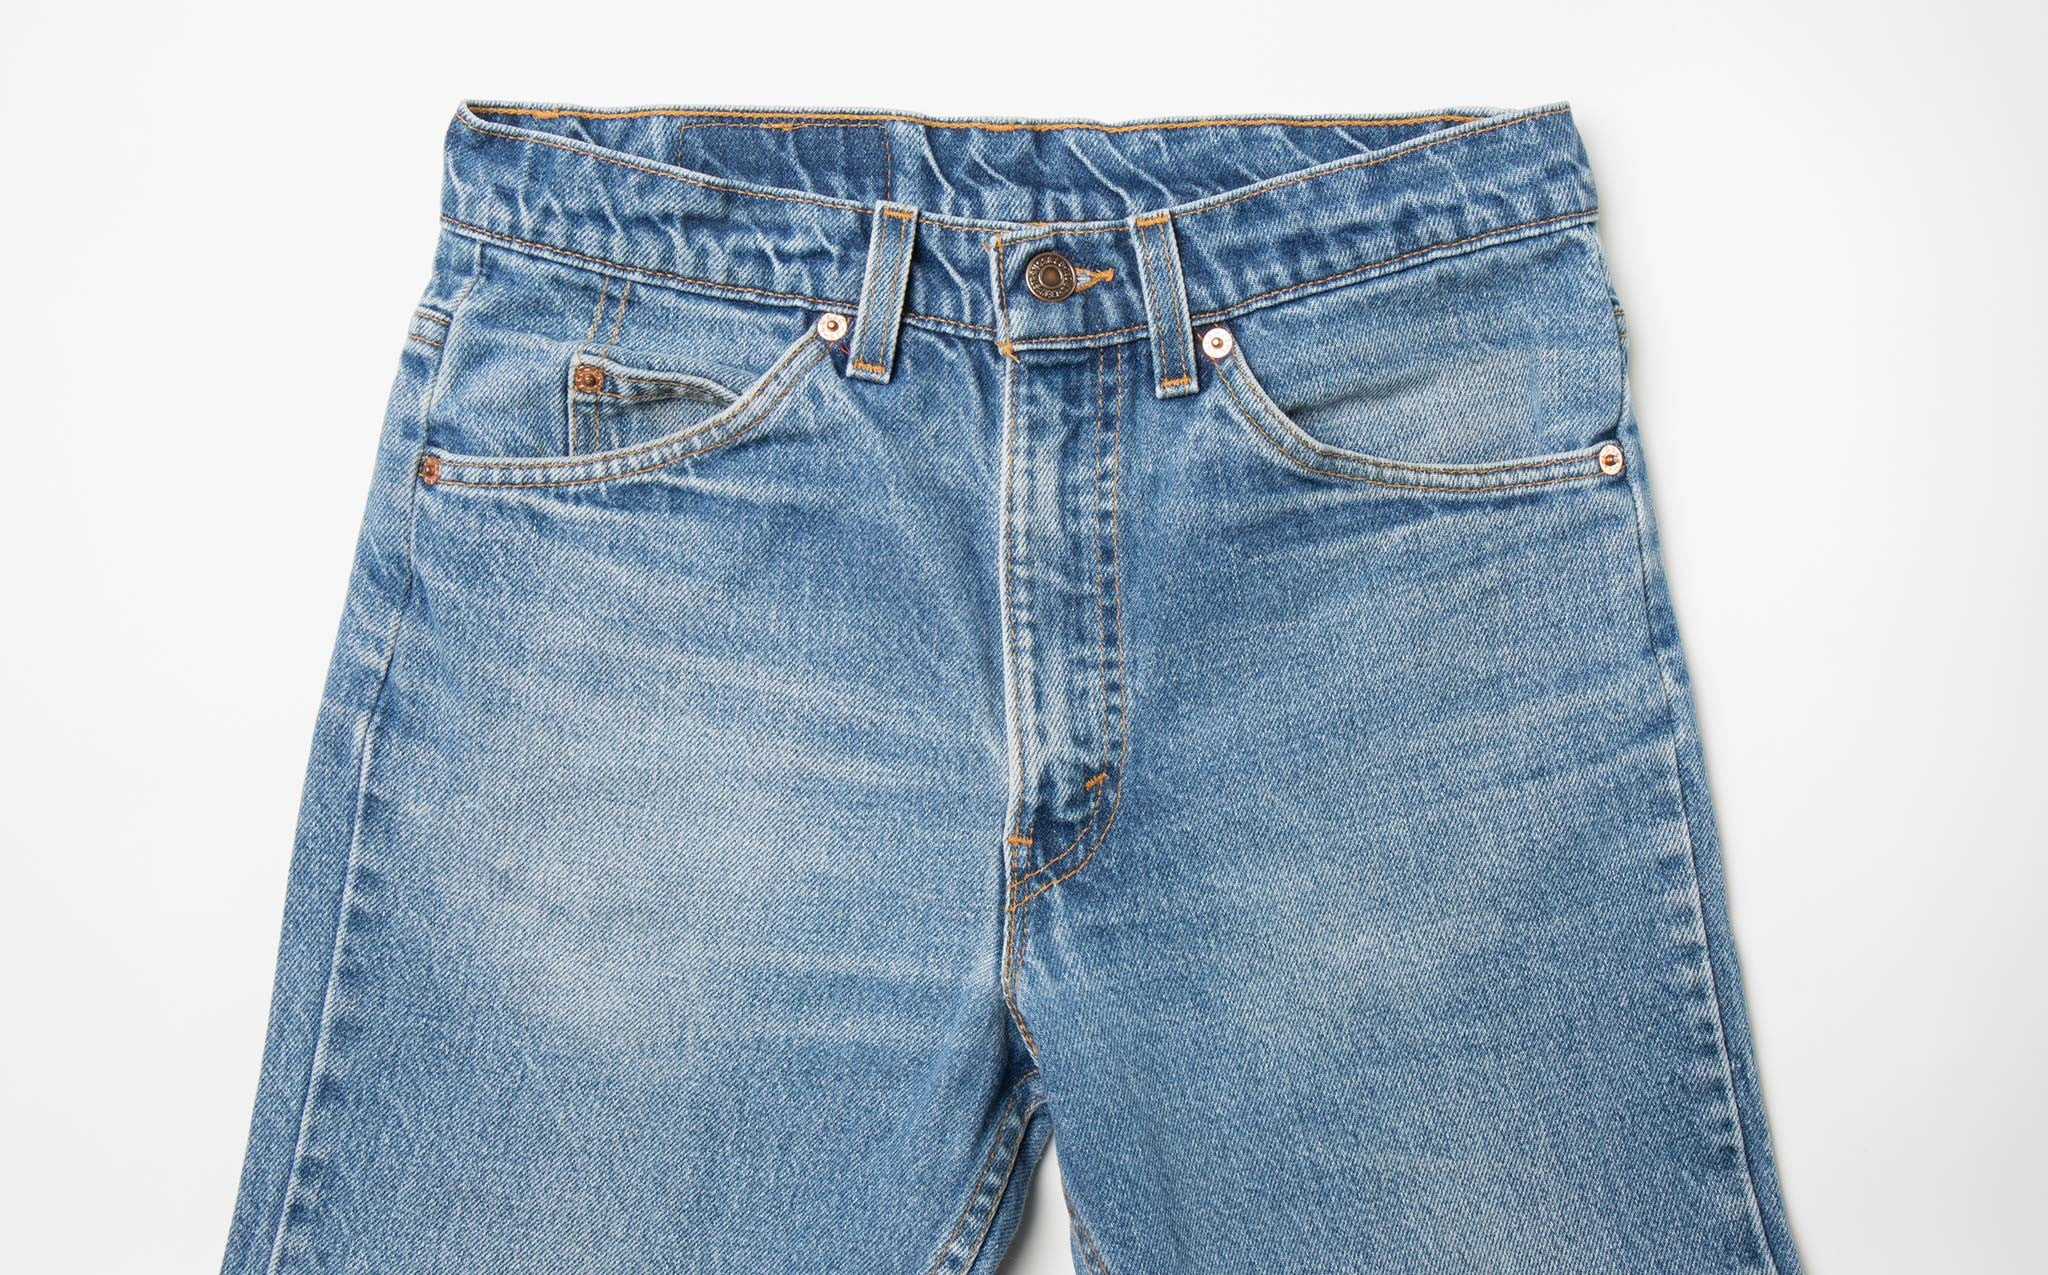 Levi's Orange Tab – Size 29/30